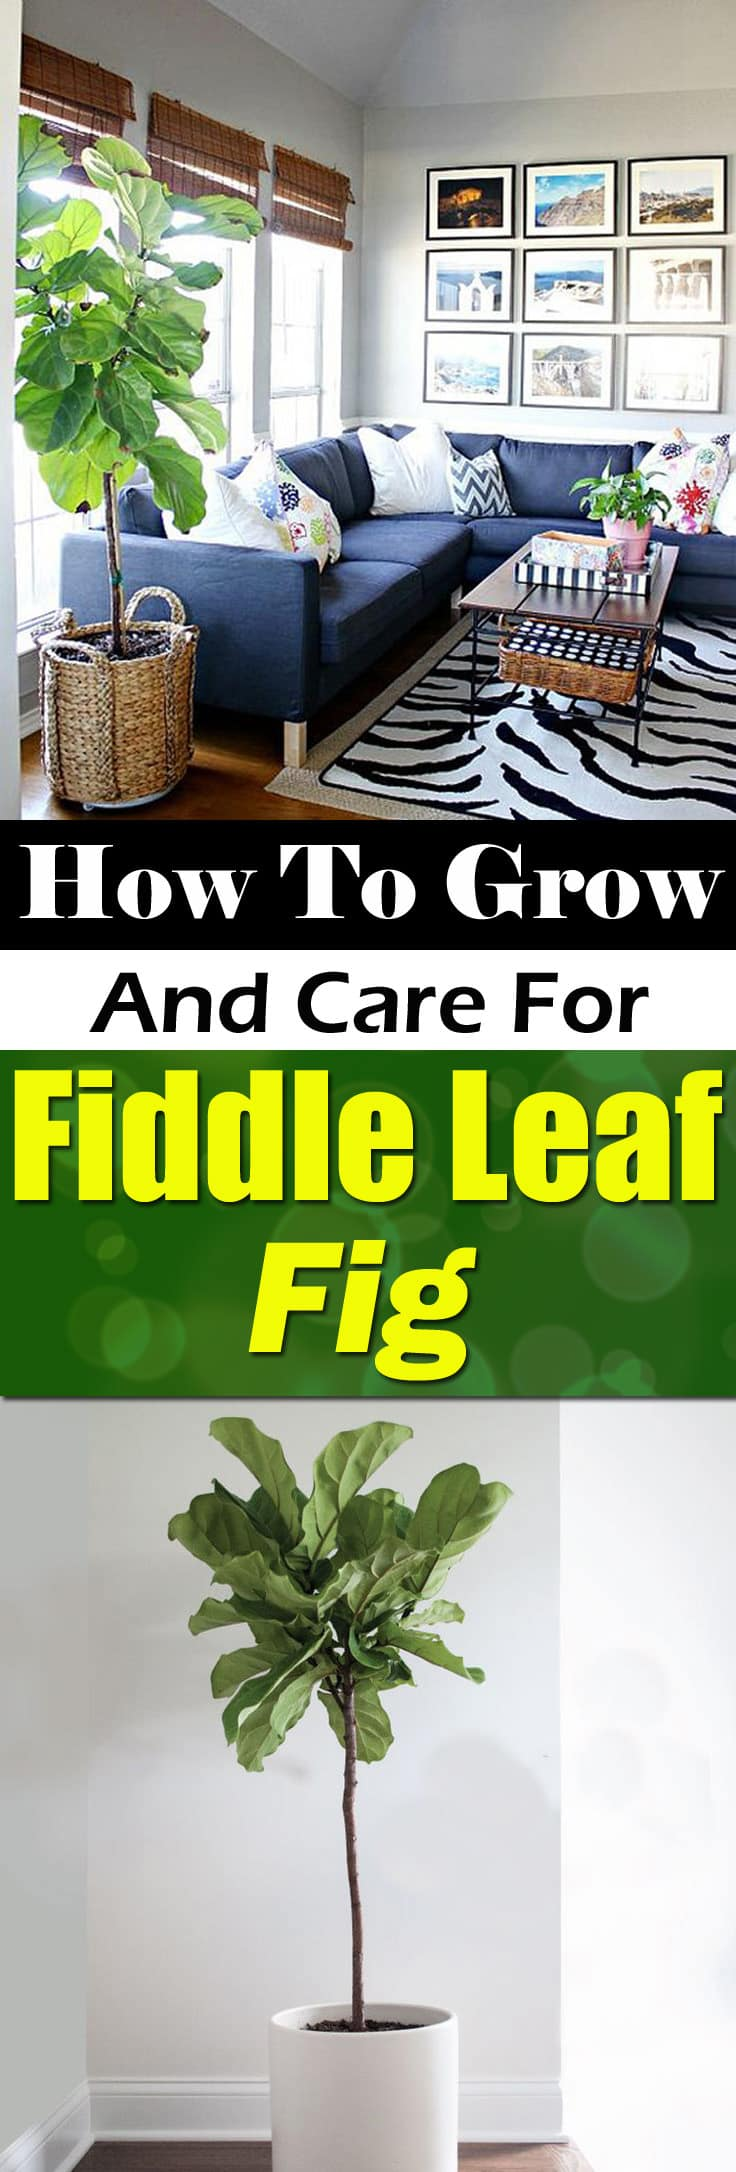 Find out how to grow and care for fiddle leaf fig. Learn about the right growing requirements and fiddle leaf fig care below.